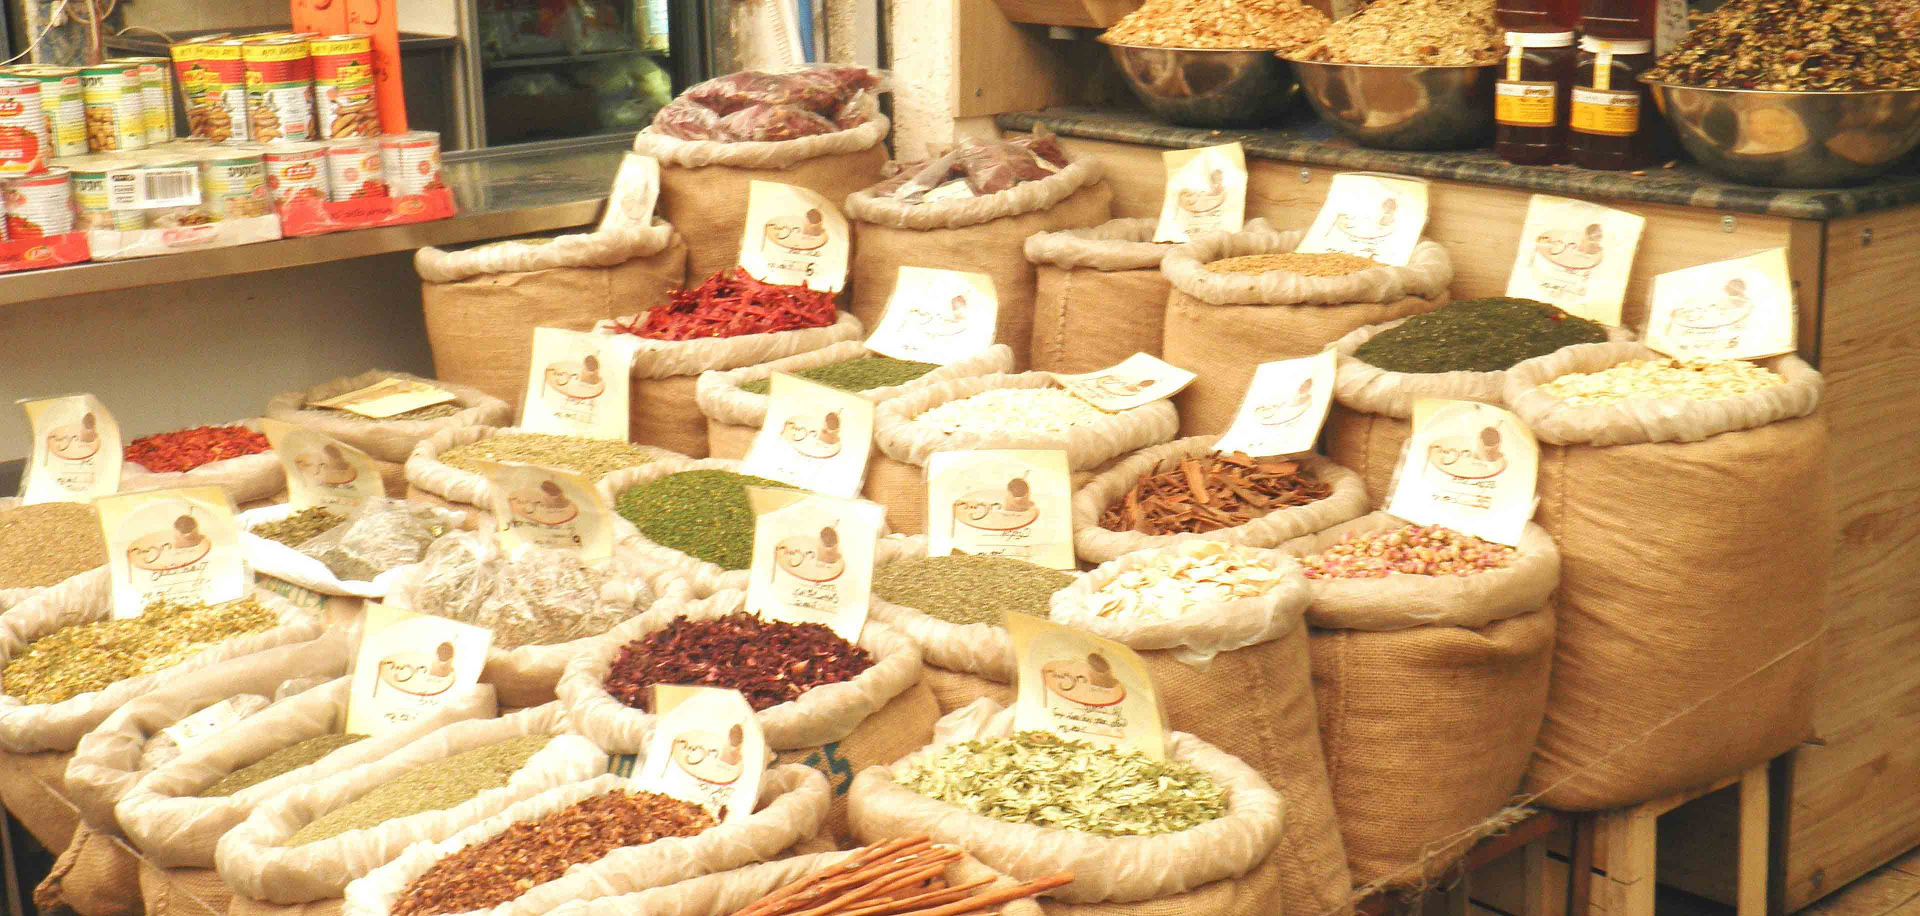 A market stall in Jerusalem with bags of spices